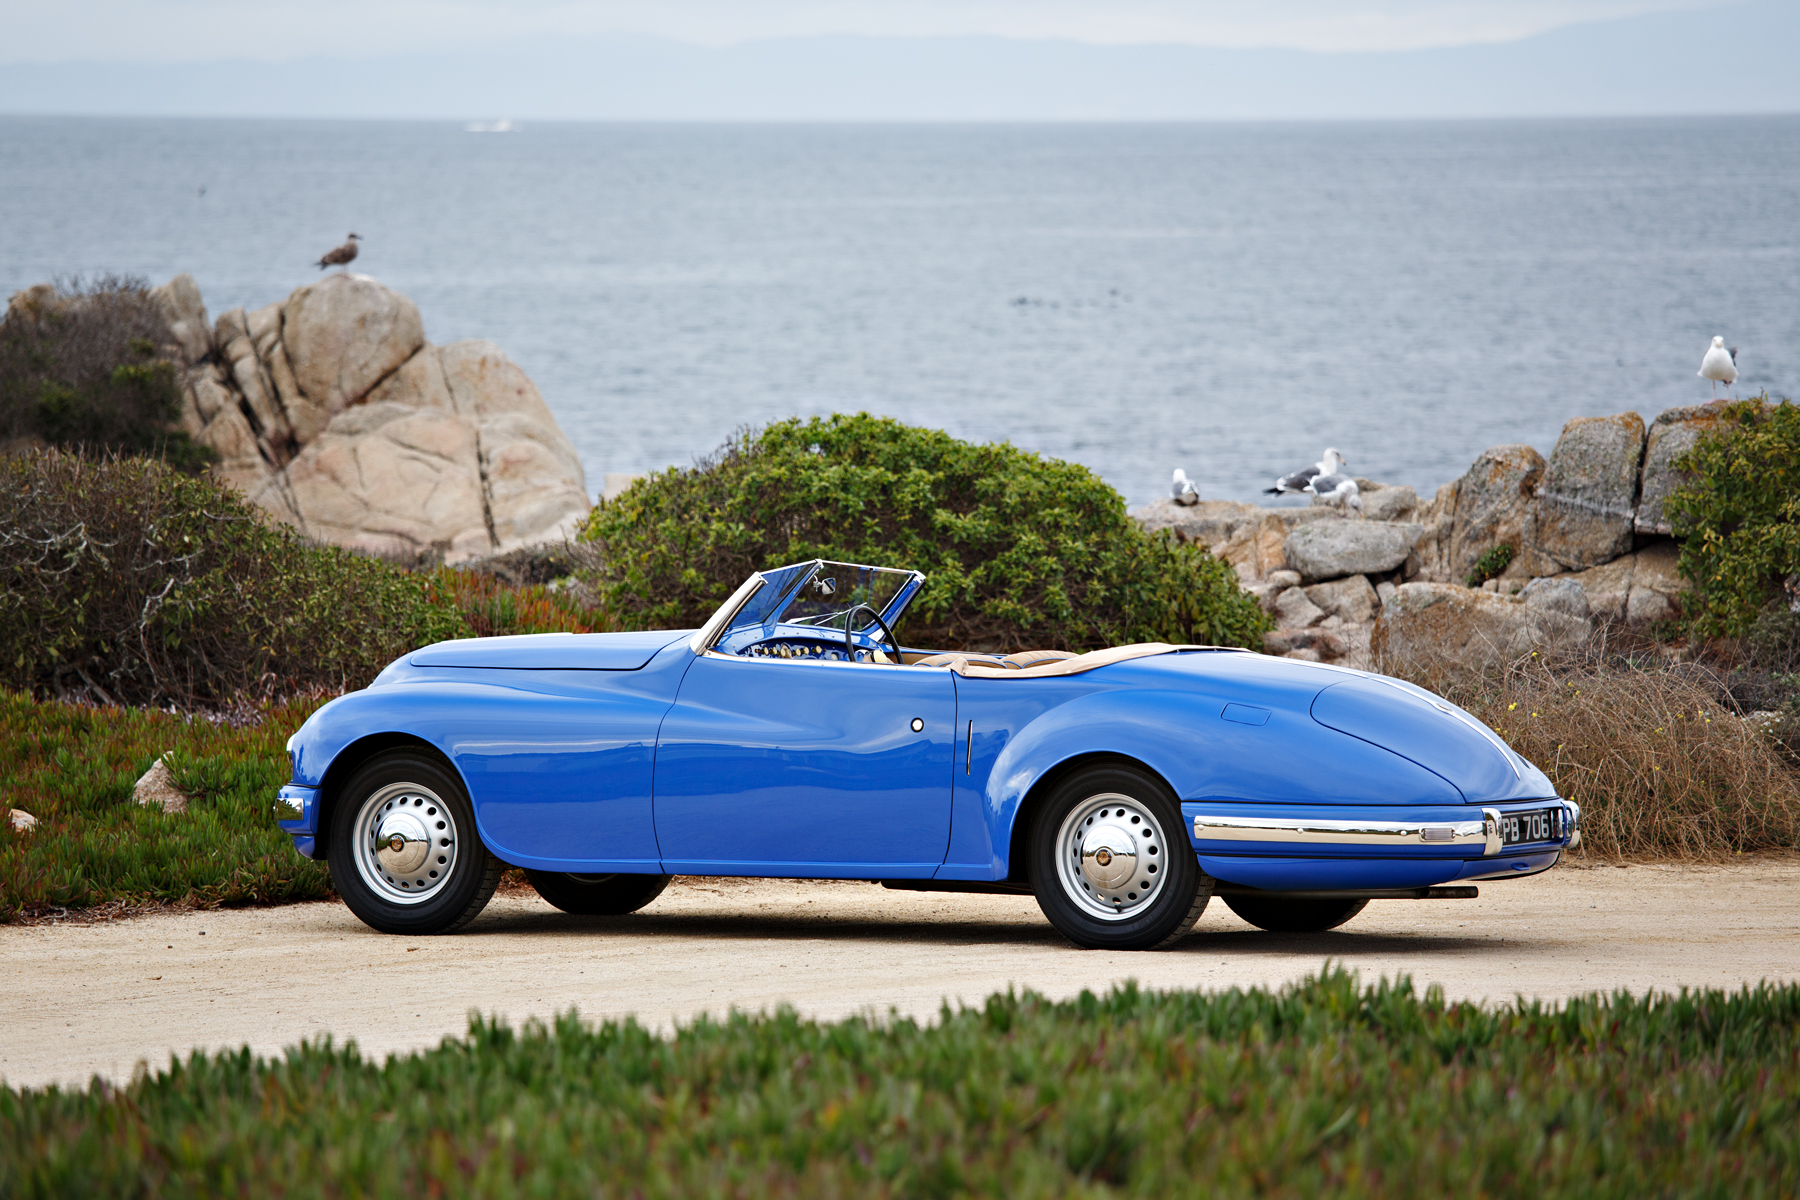 1949 Bristol 402 Cabriolet sold during the Scottsdale auctions